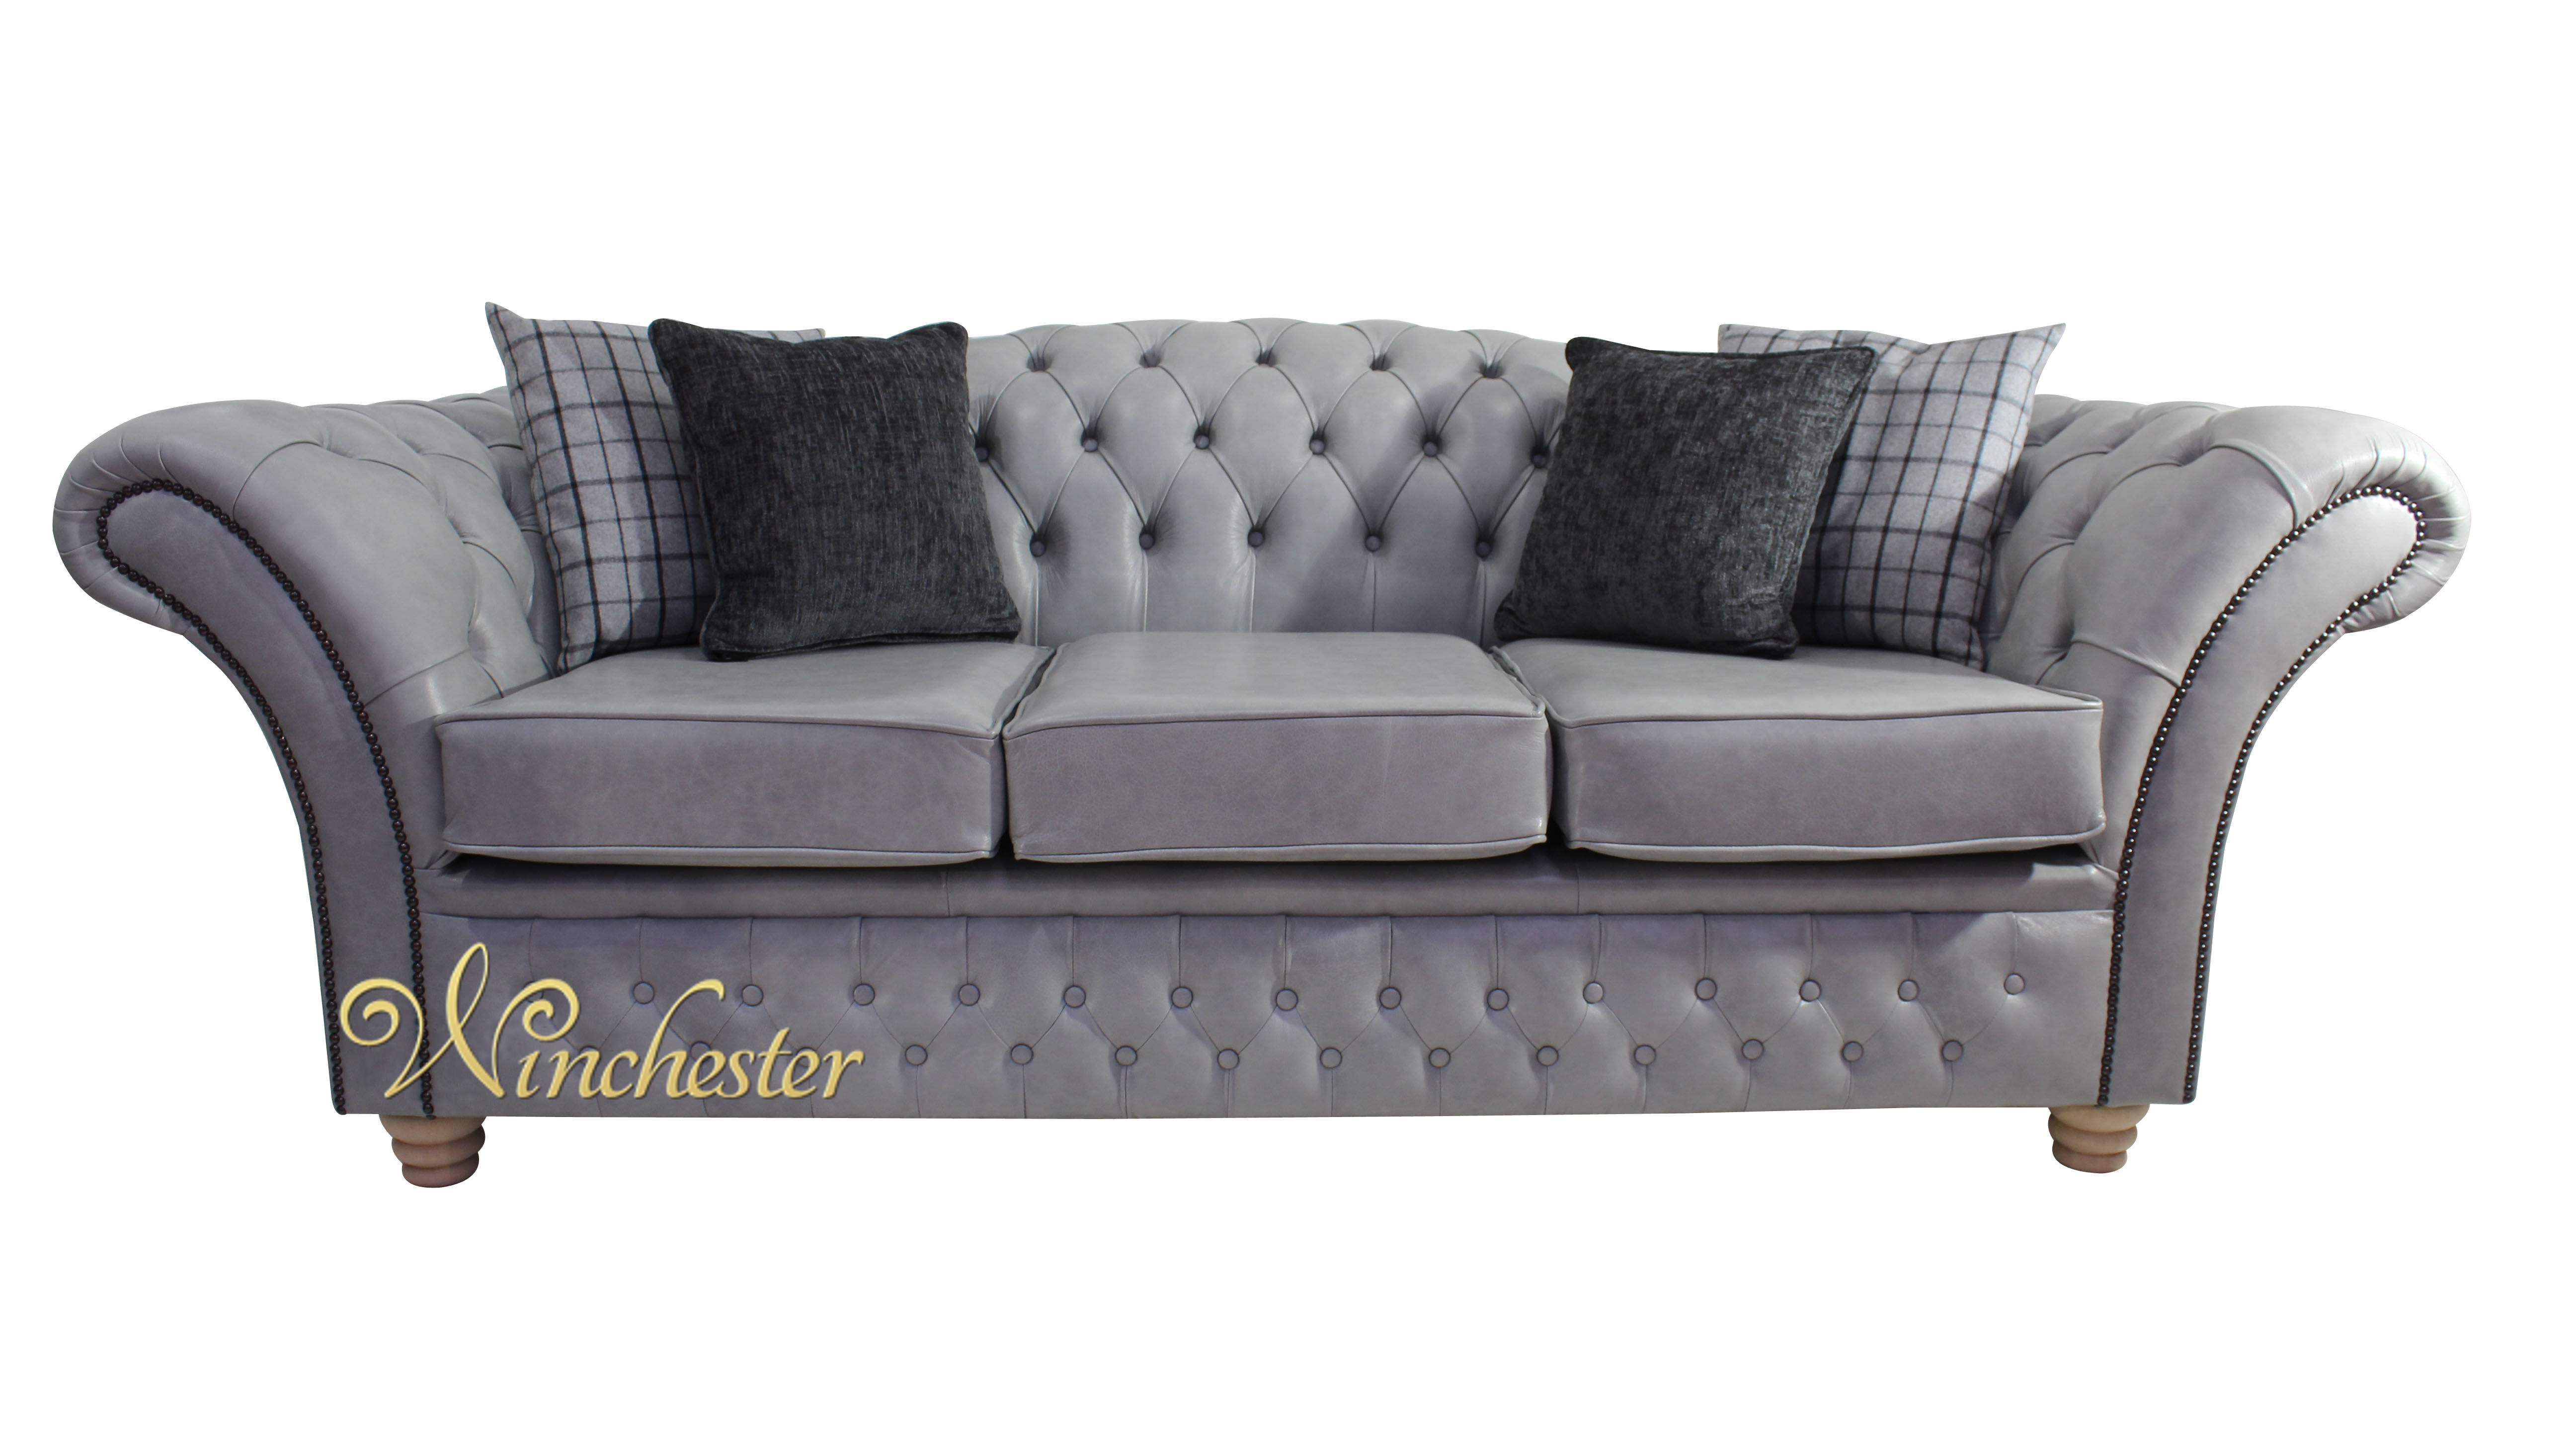 Chesterfield churchill 3 seater sofa settee stella for Traditional sofa